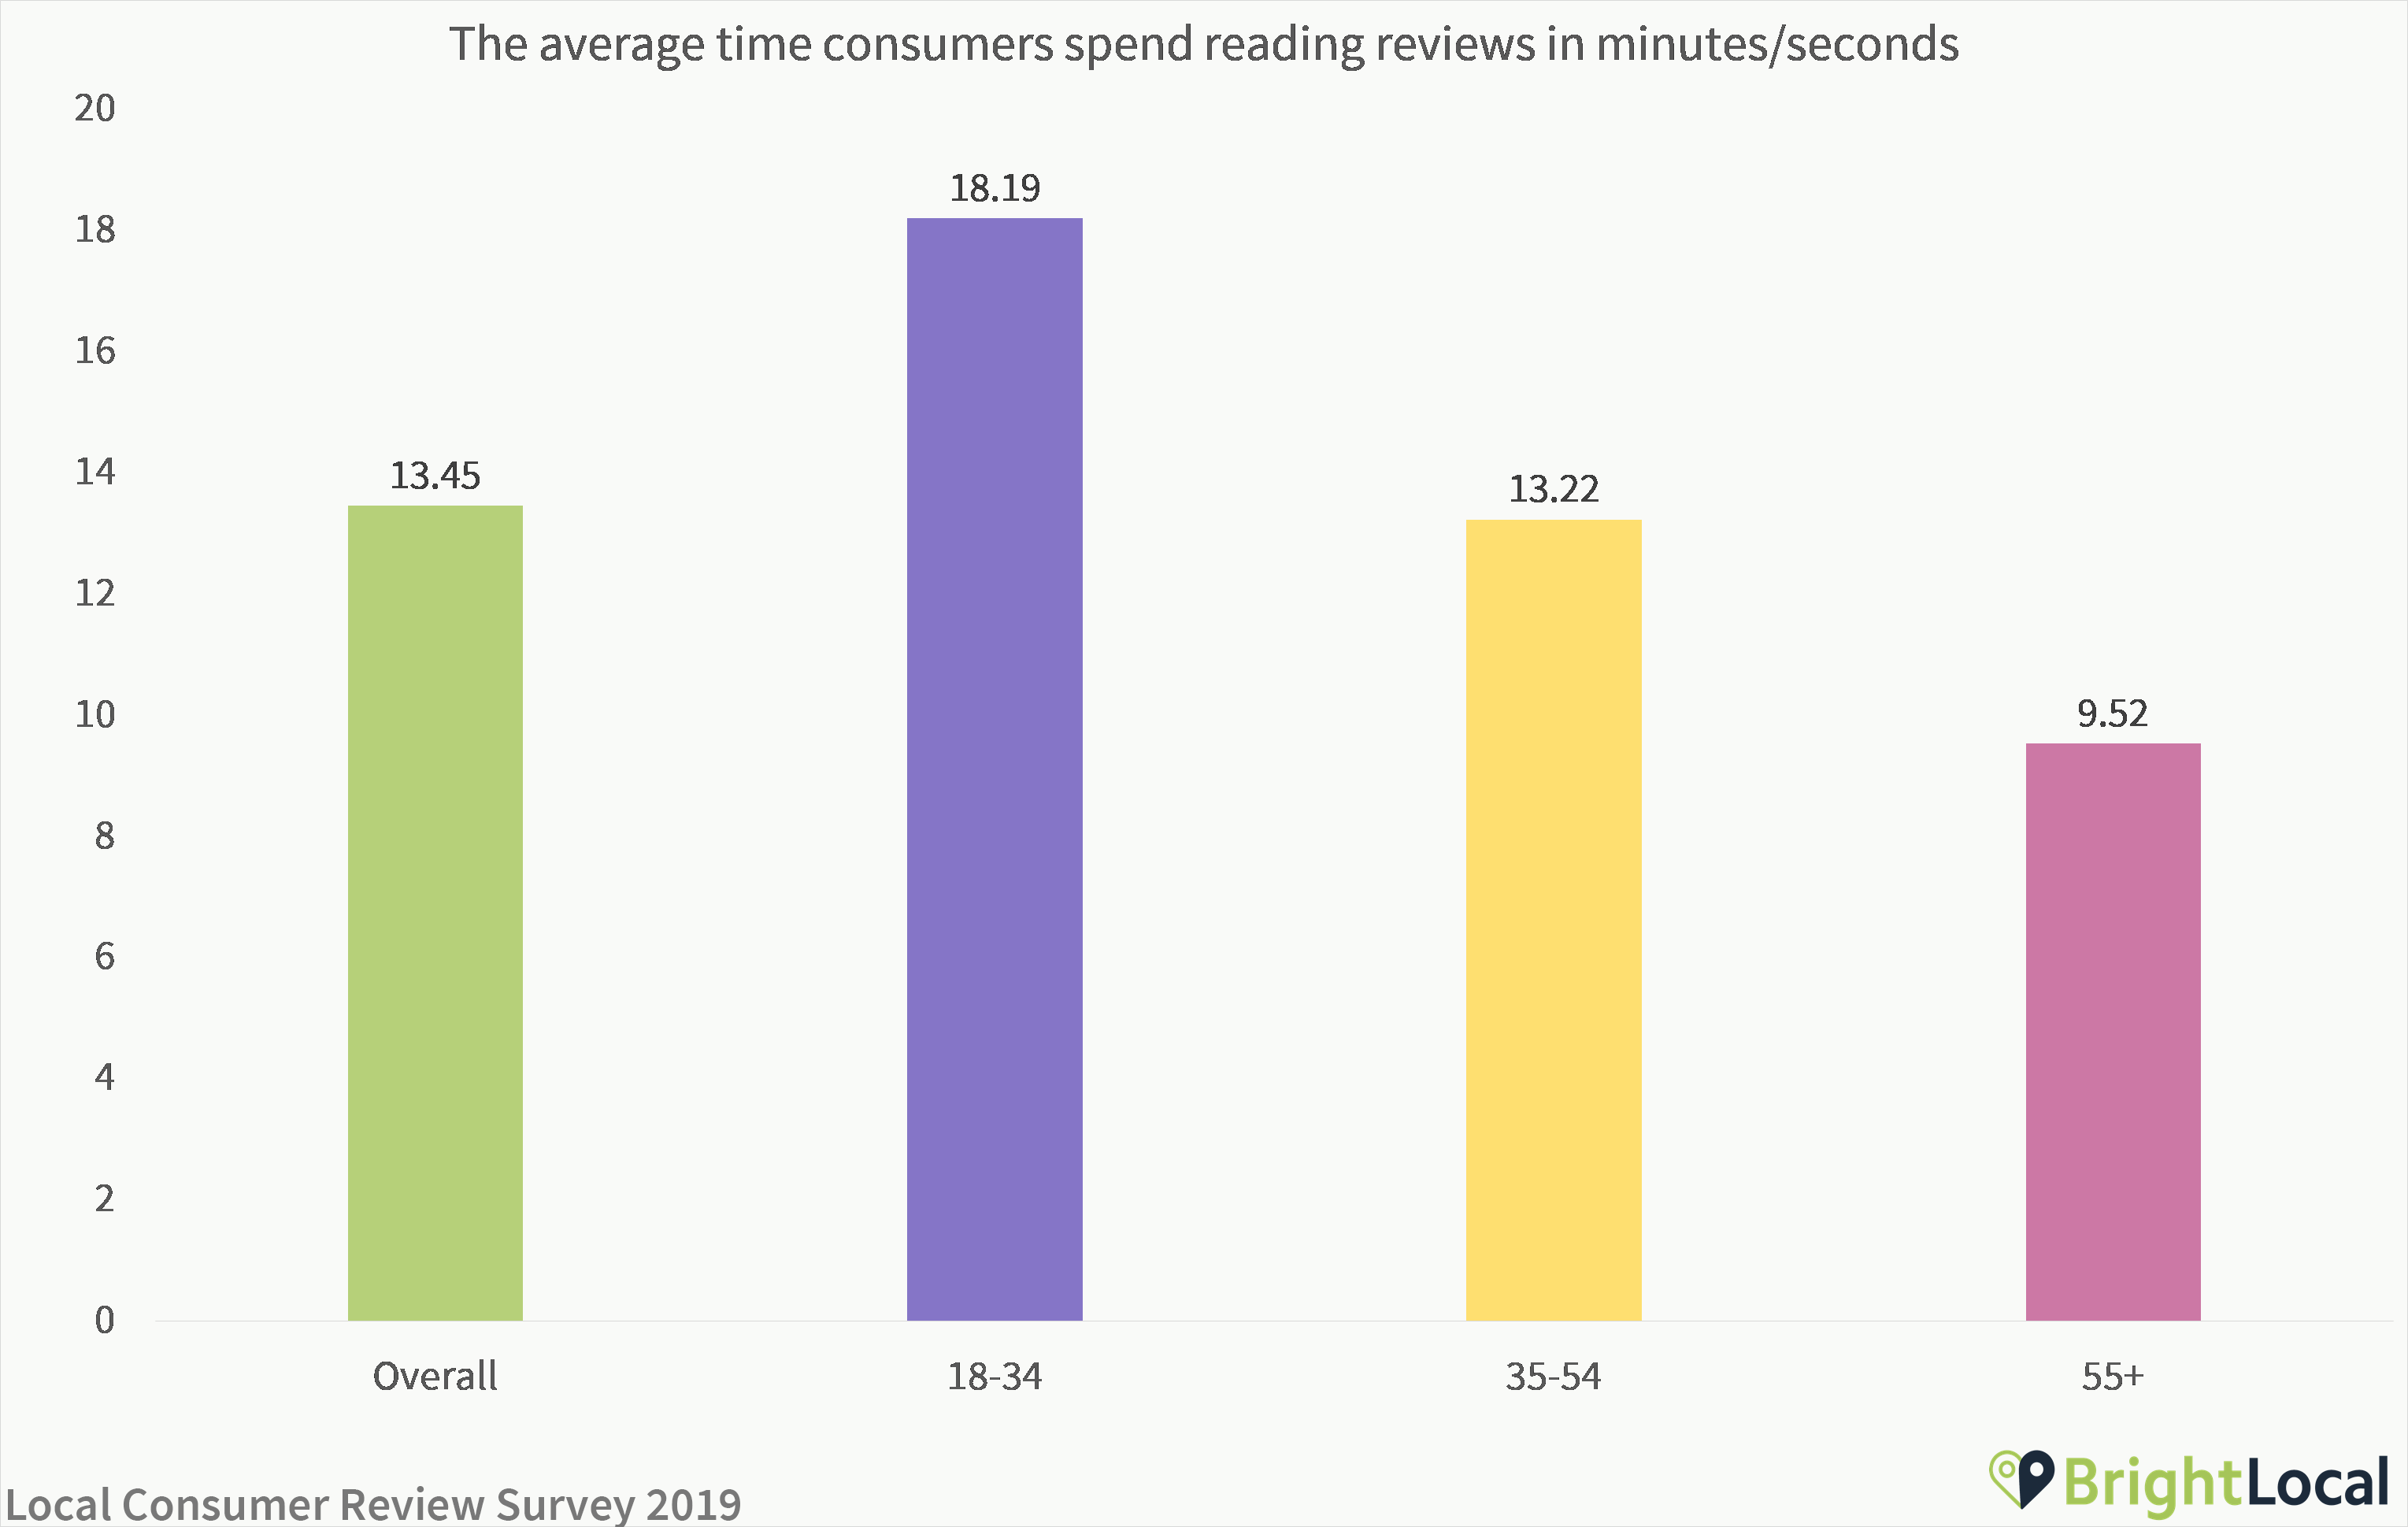 Average time reading reviews